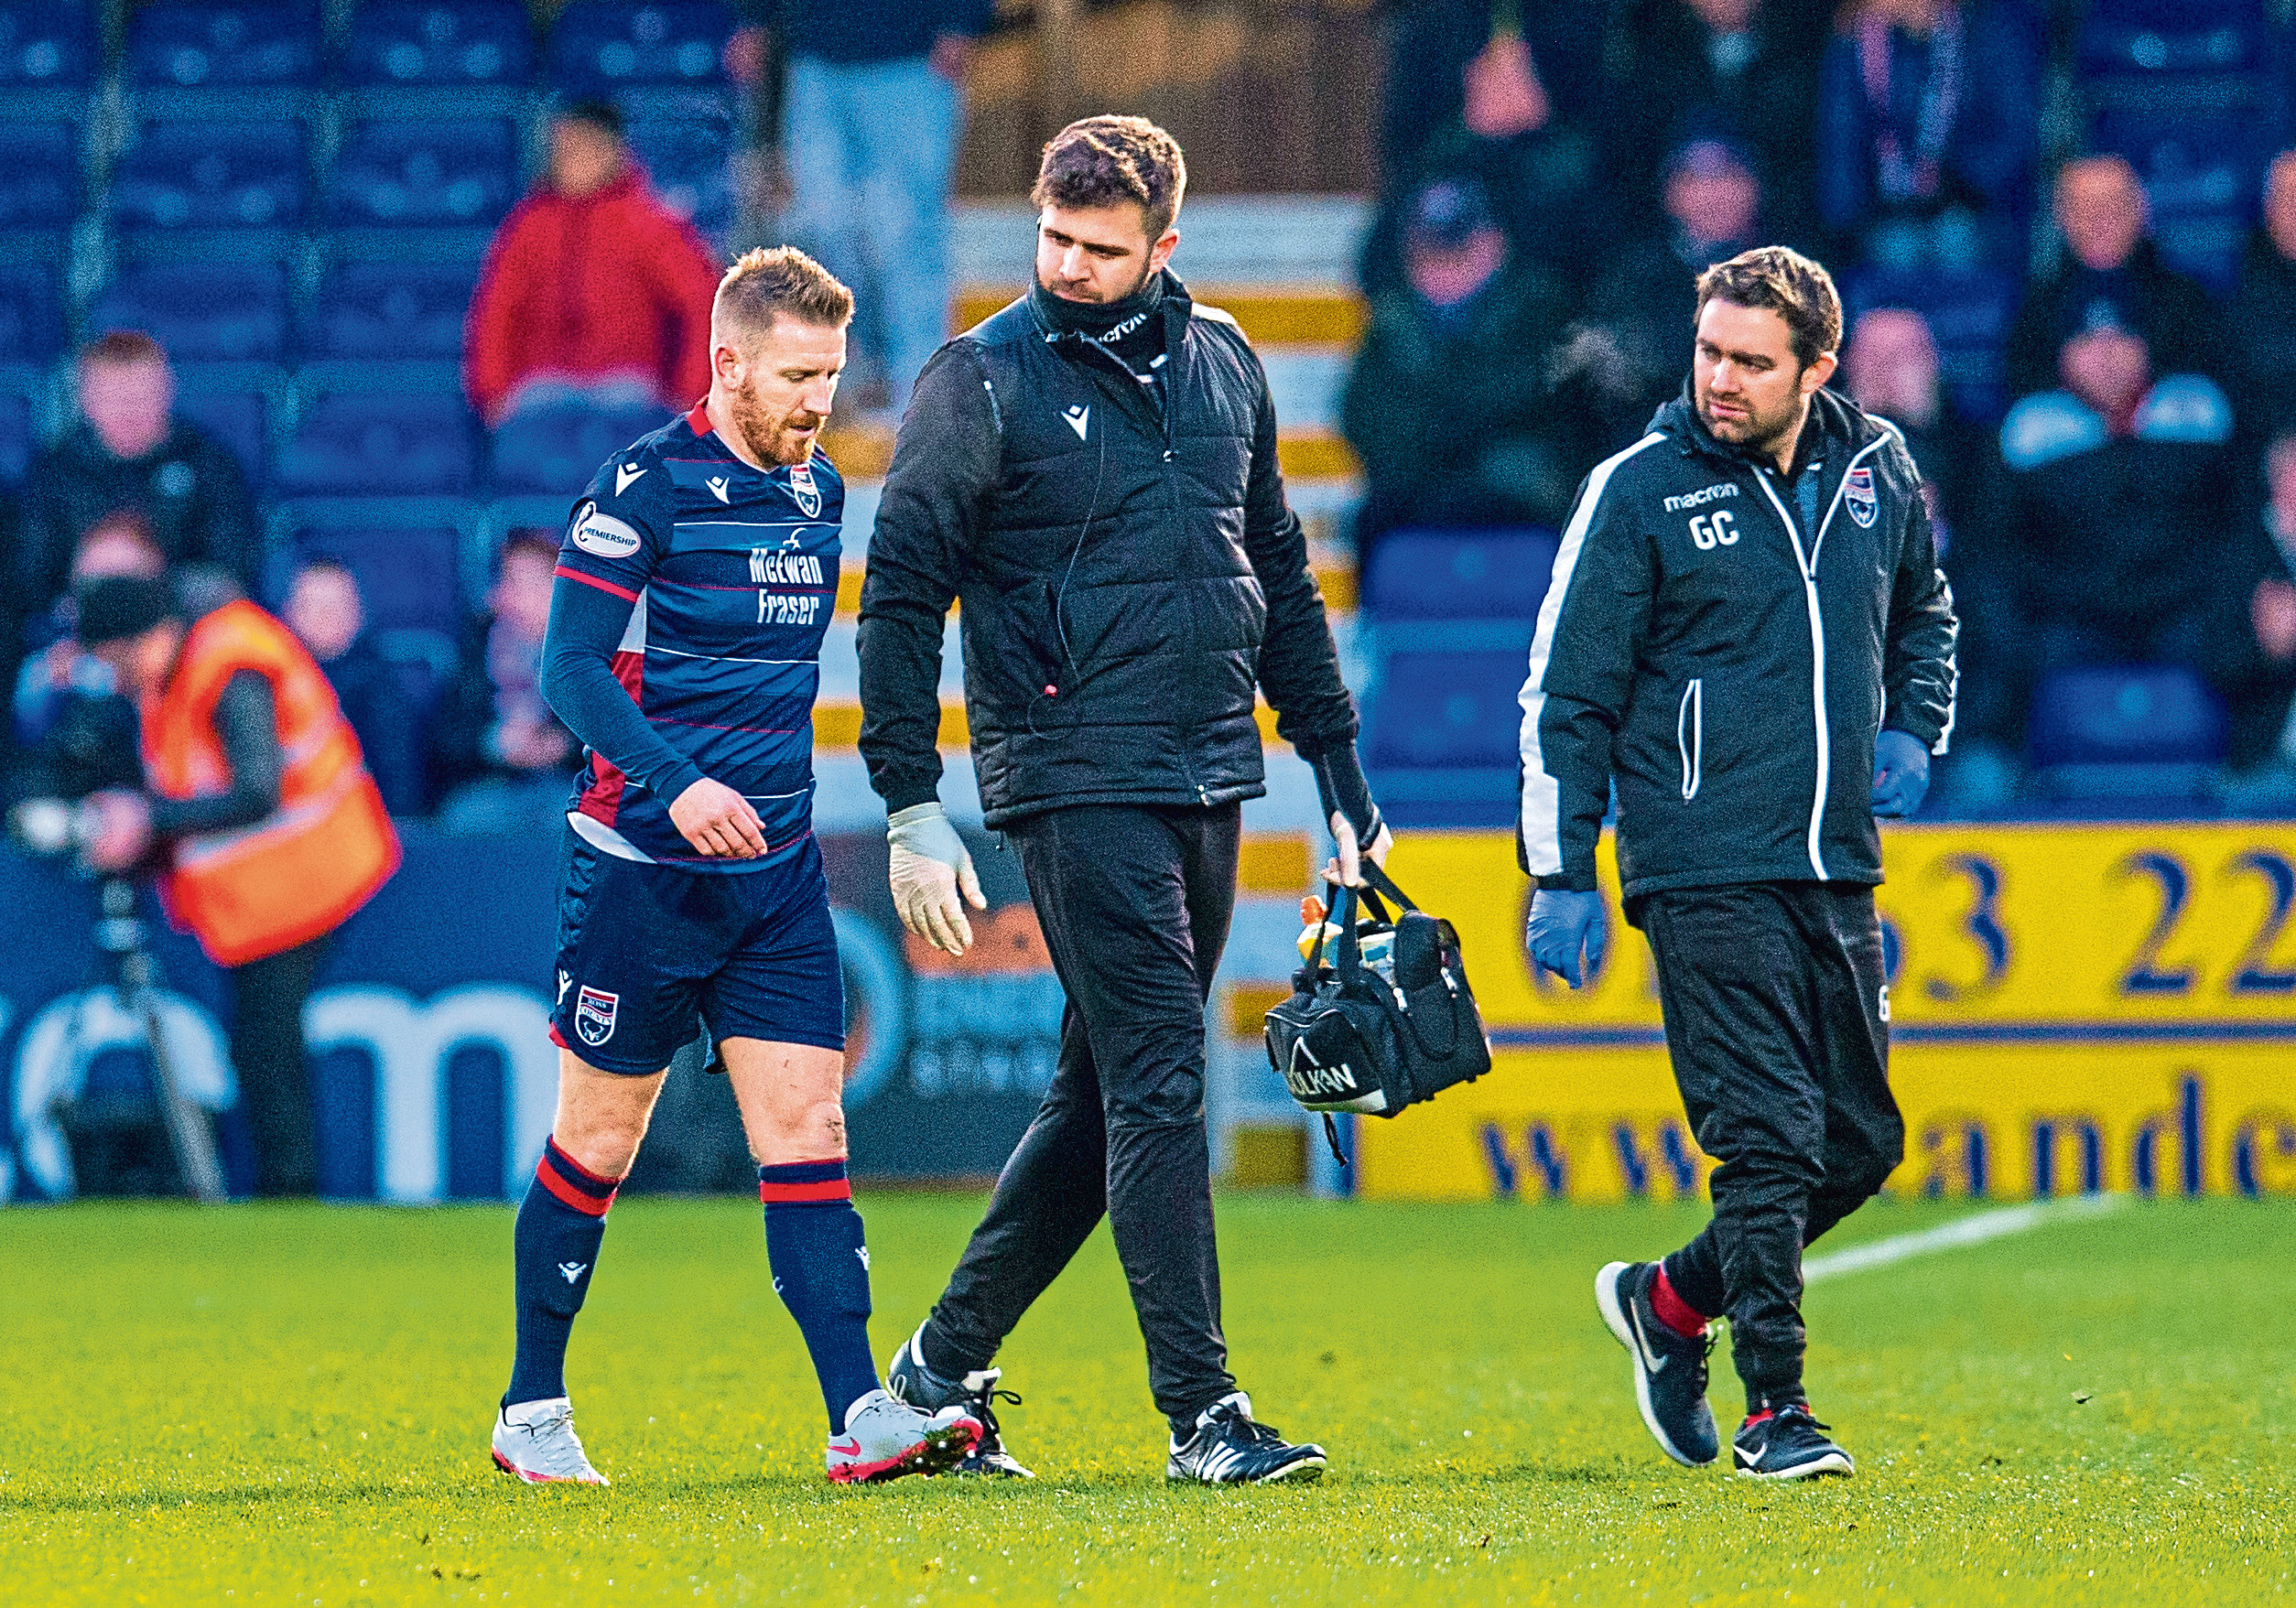 Michael Gardyne goes off injured during the Ladbrokes Premiership match between Ross County and Kilmarnock.